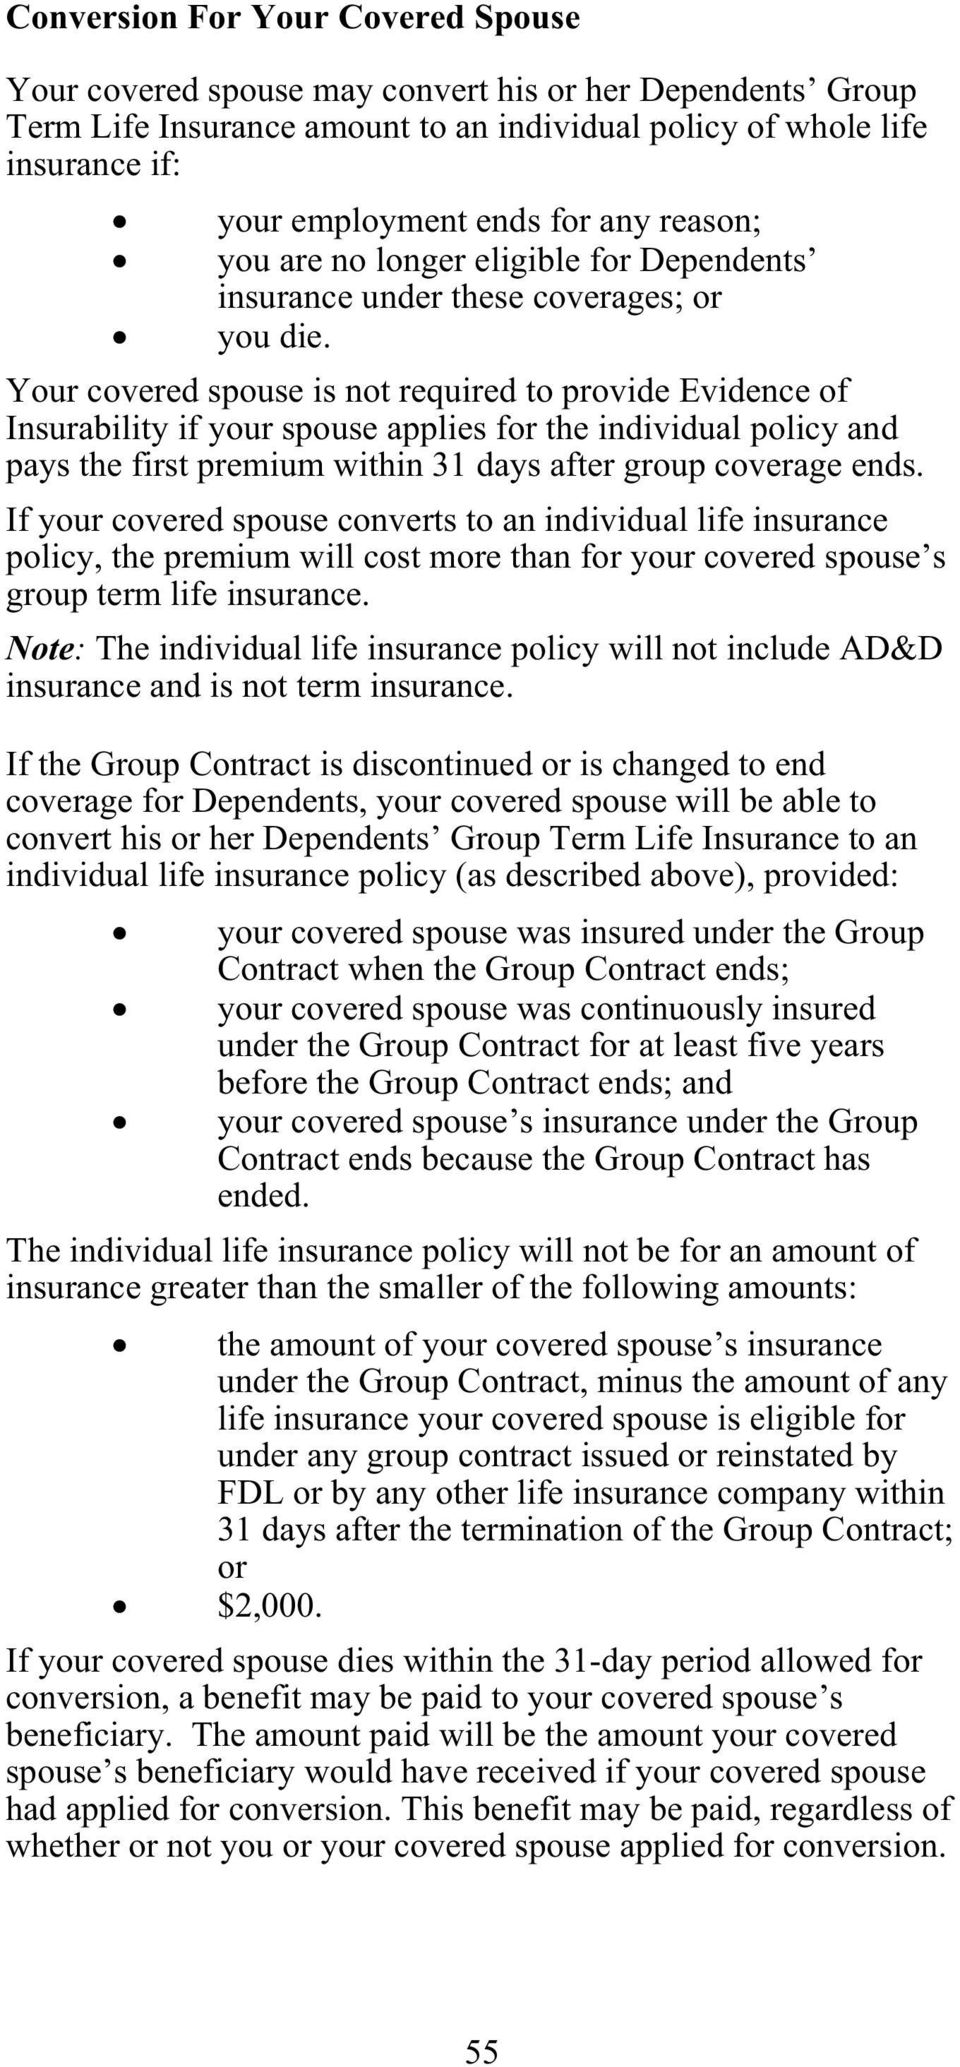 Your covered spouse is not required to provide Evidence of Insurability if your spouse applies for the individual policy and pays the first premium within 31 days after group coverage ends.